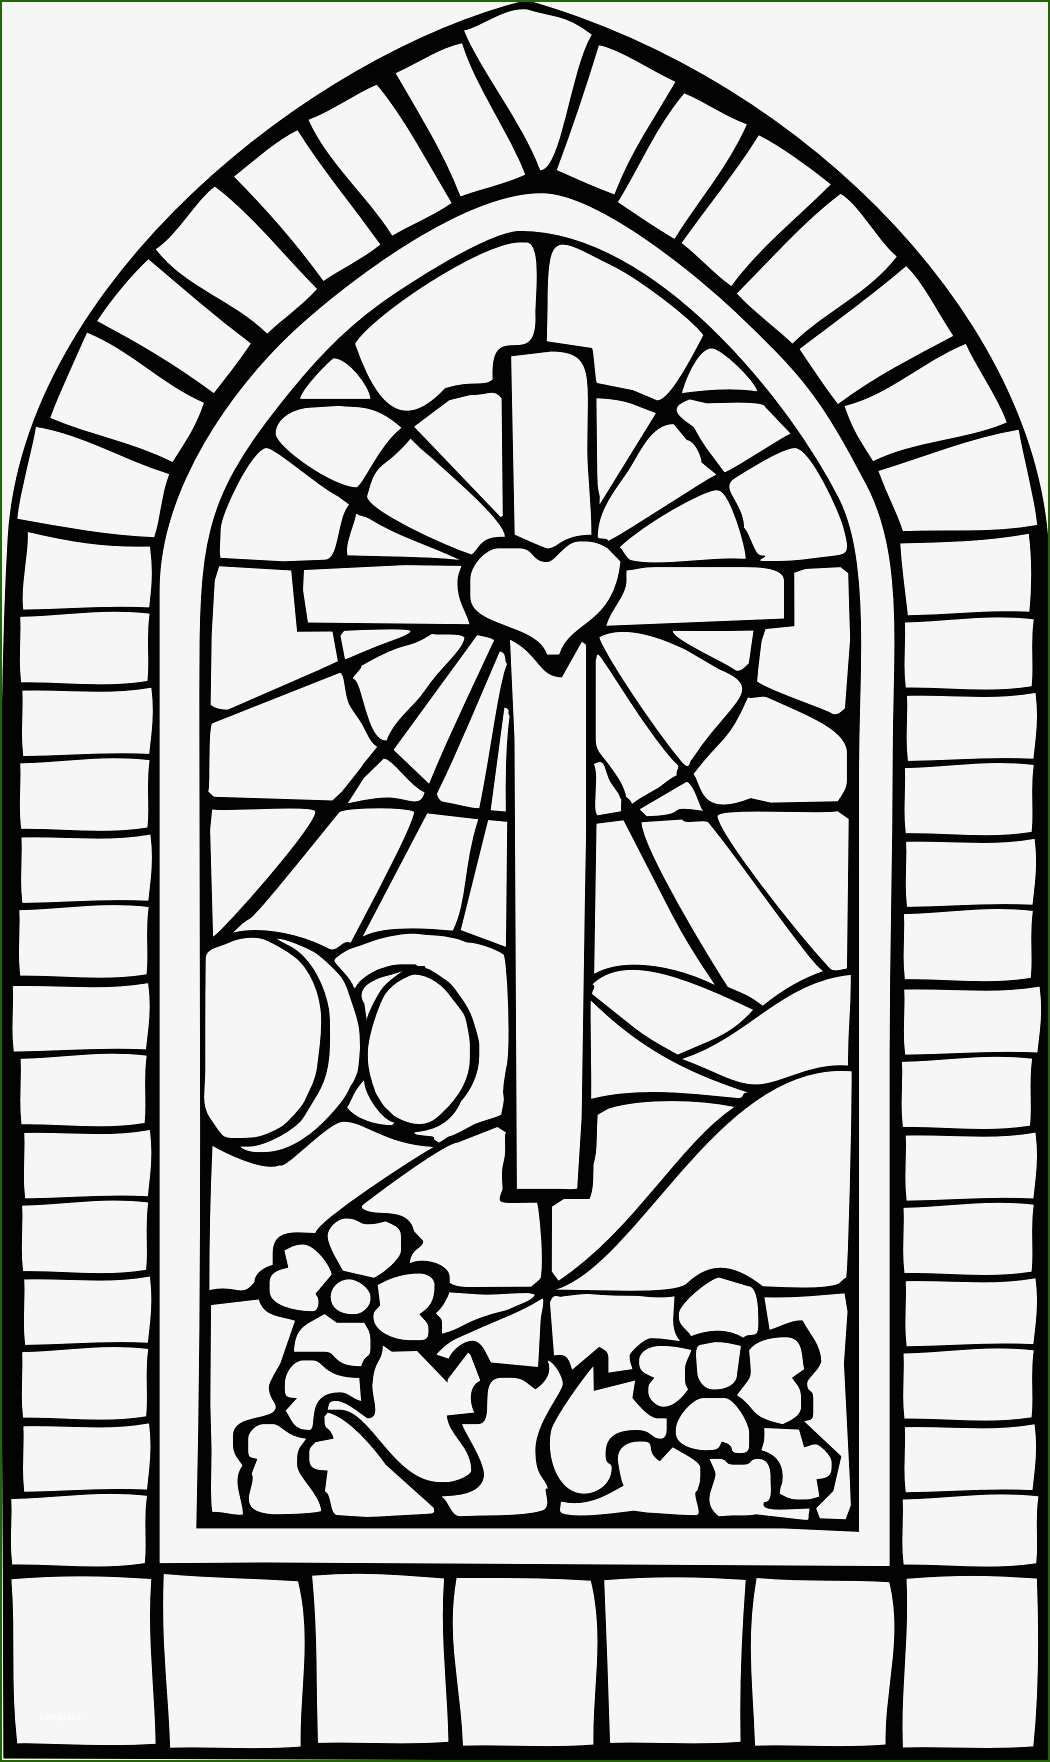 Pin on Cross coloring page